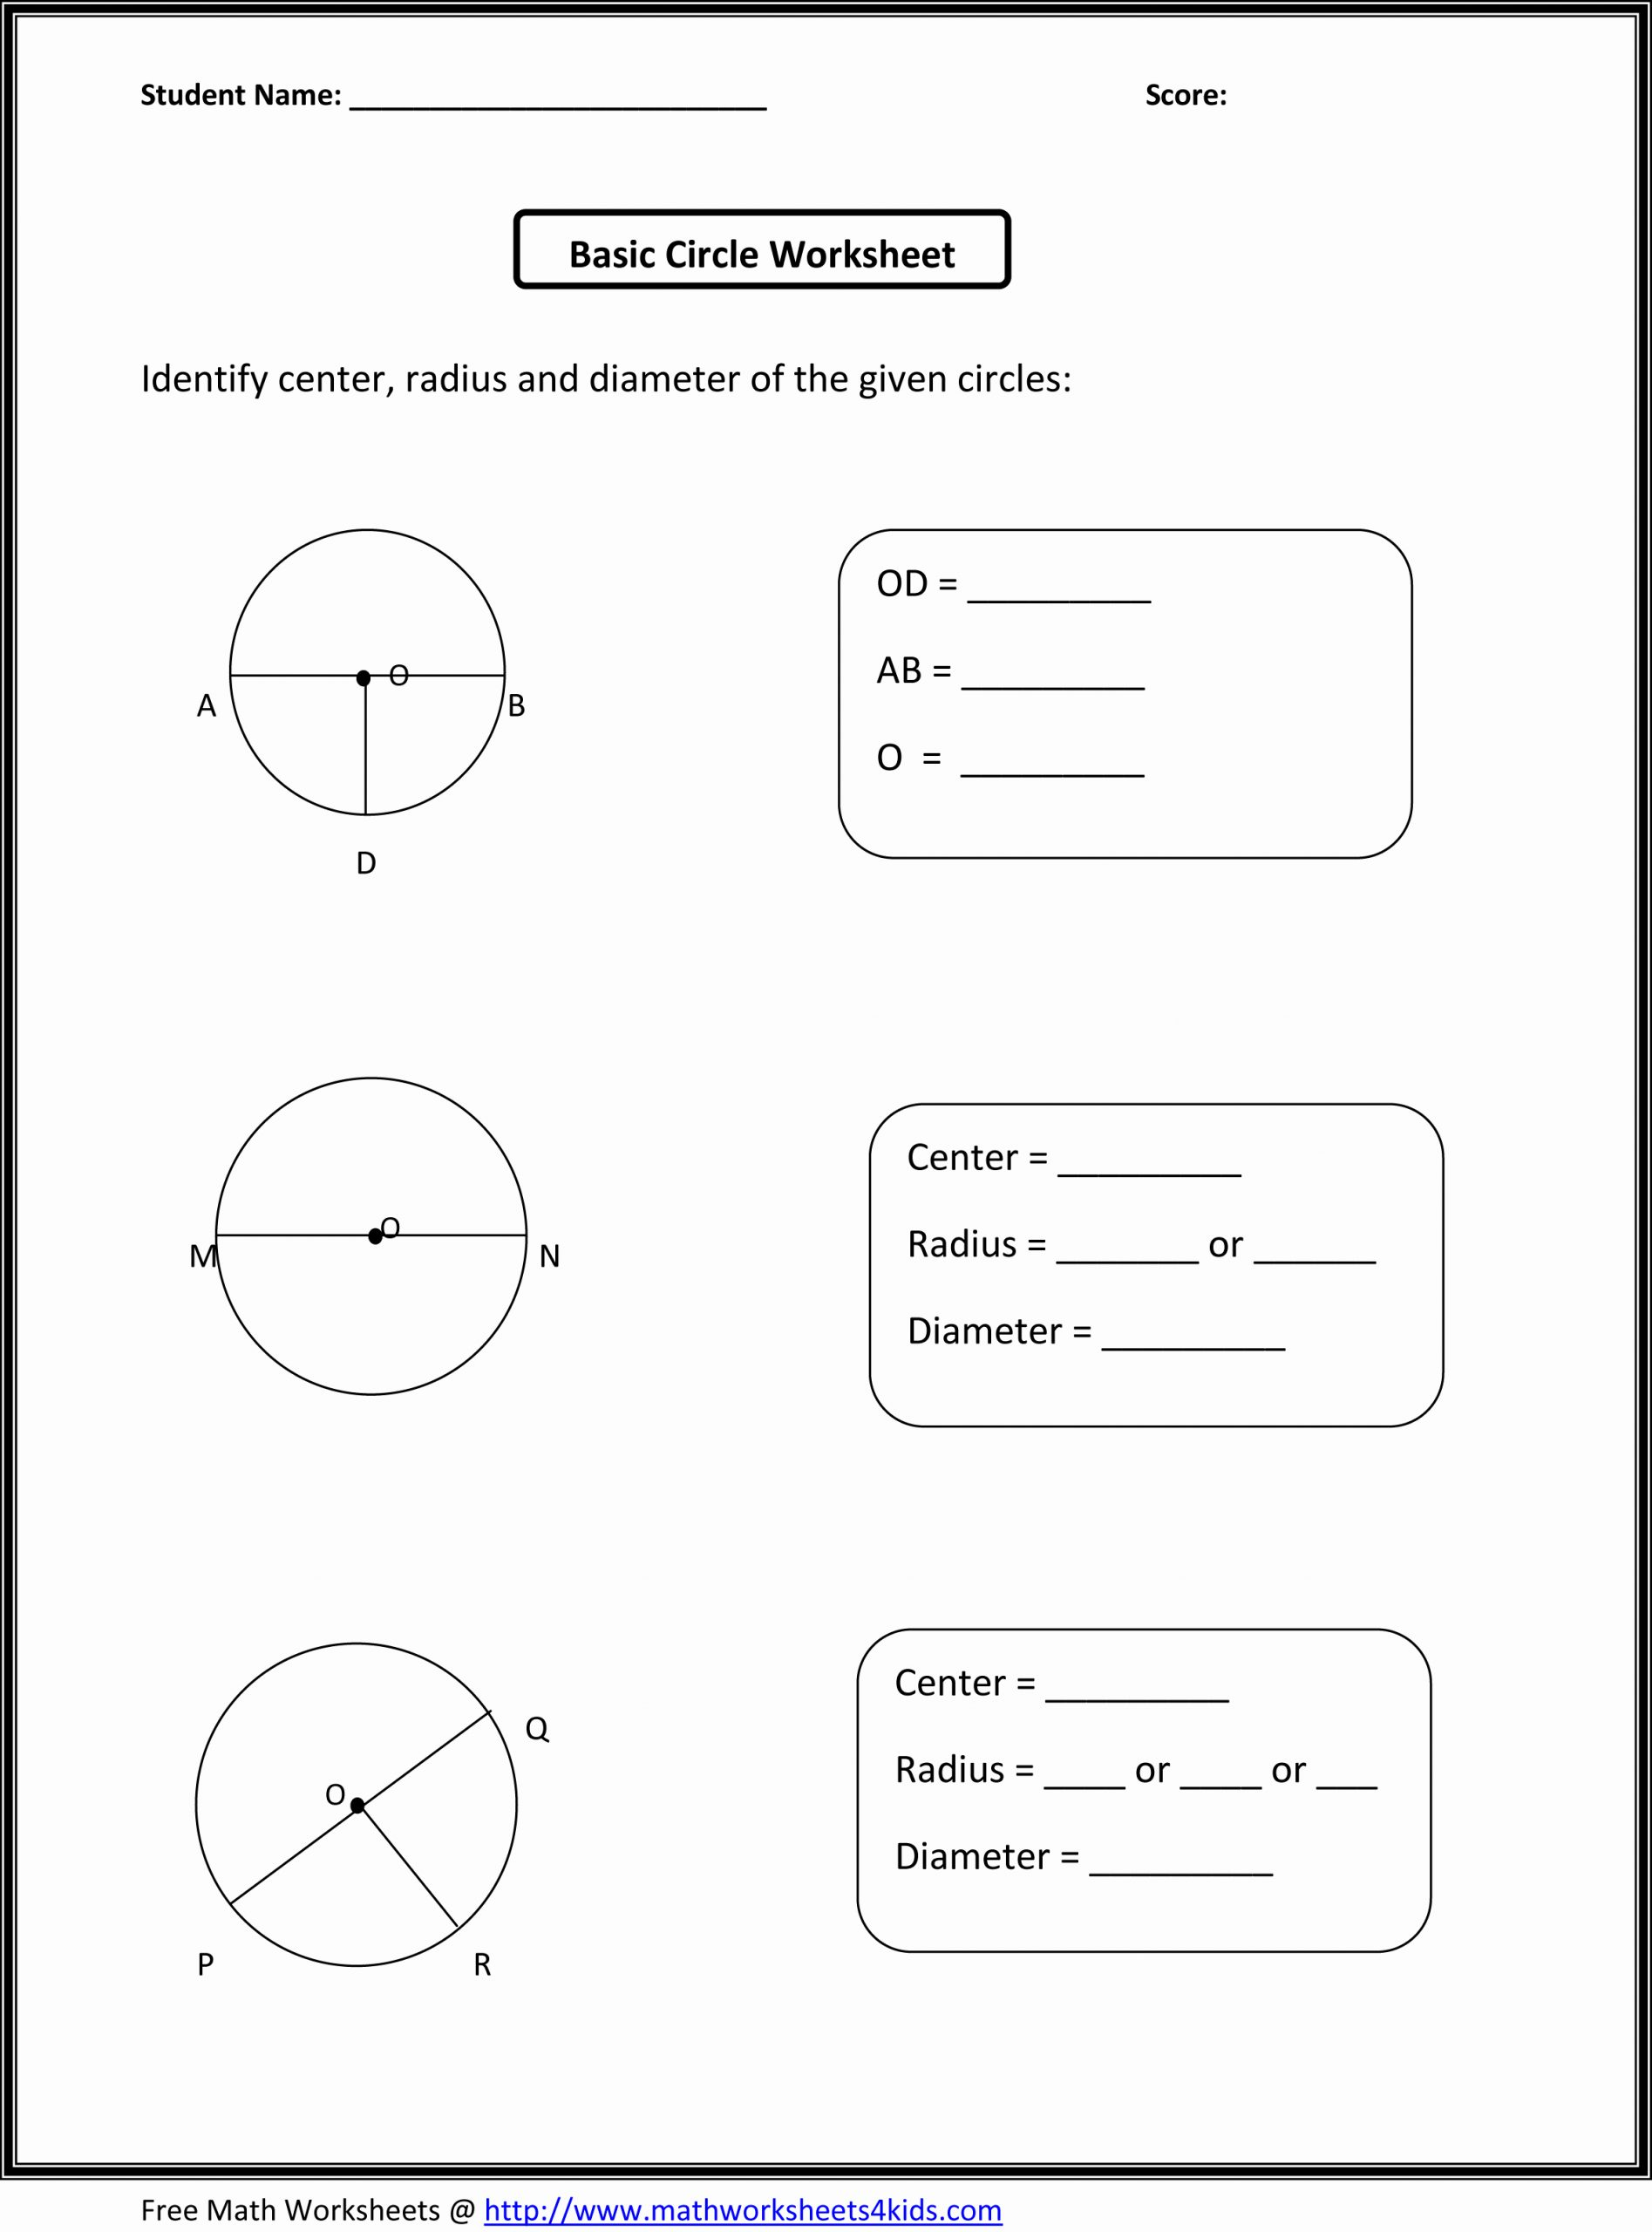 Circle Graphs Worksheets 7th Grade Best Of Pie Graph Worksheets 7th Grade Pdfpie Graph Worksheets 7th